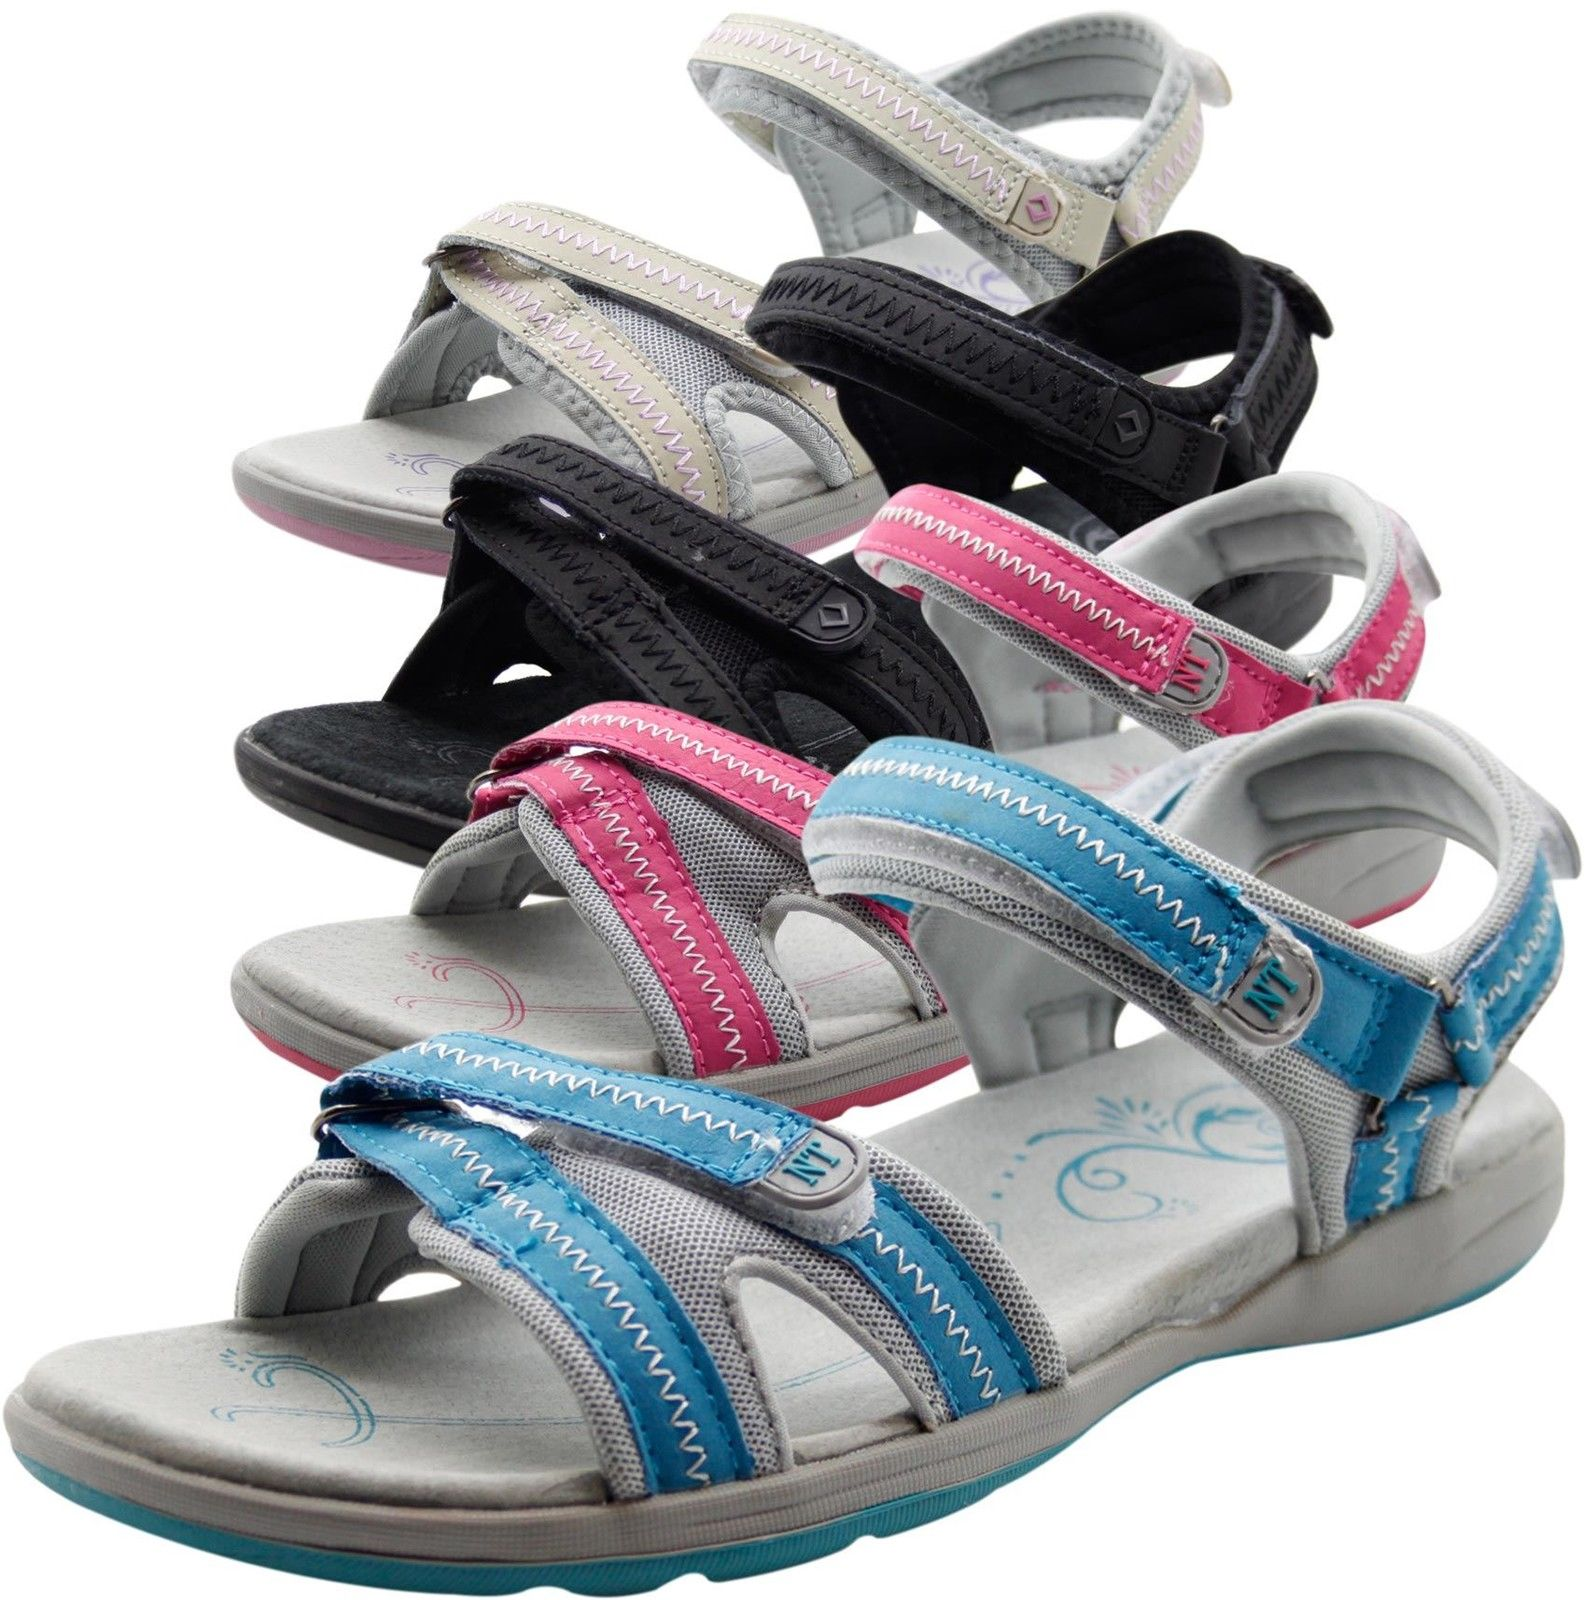 b3a57f081b13 New Ladies Northwest Territory Sports Shoes Women Outdoor Mules Summer  Sandals